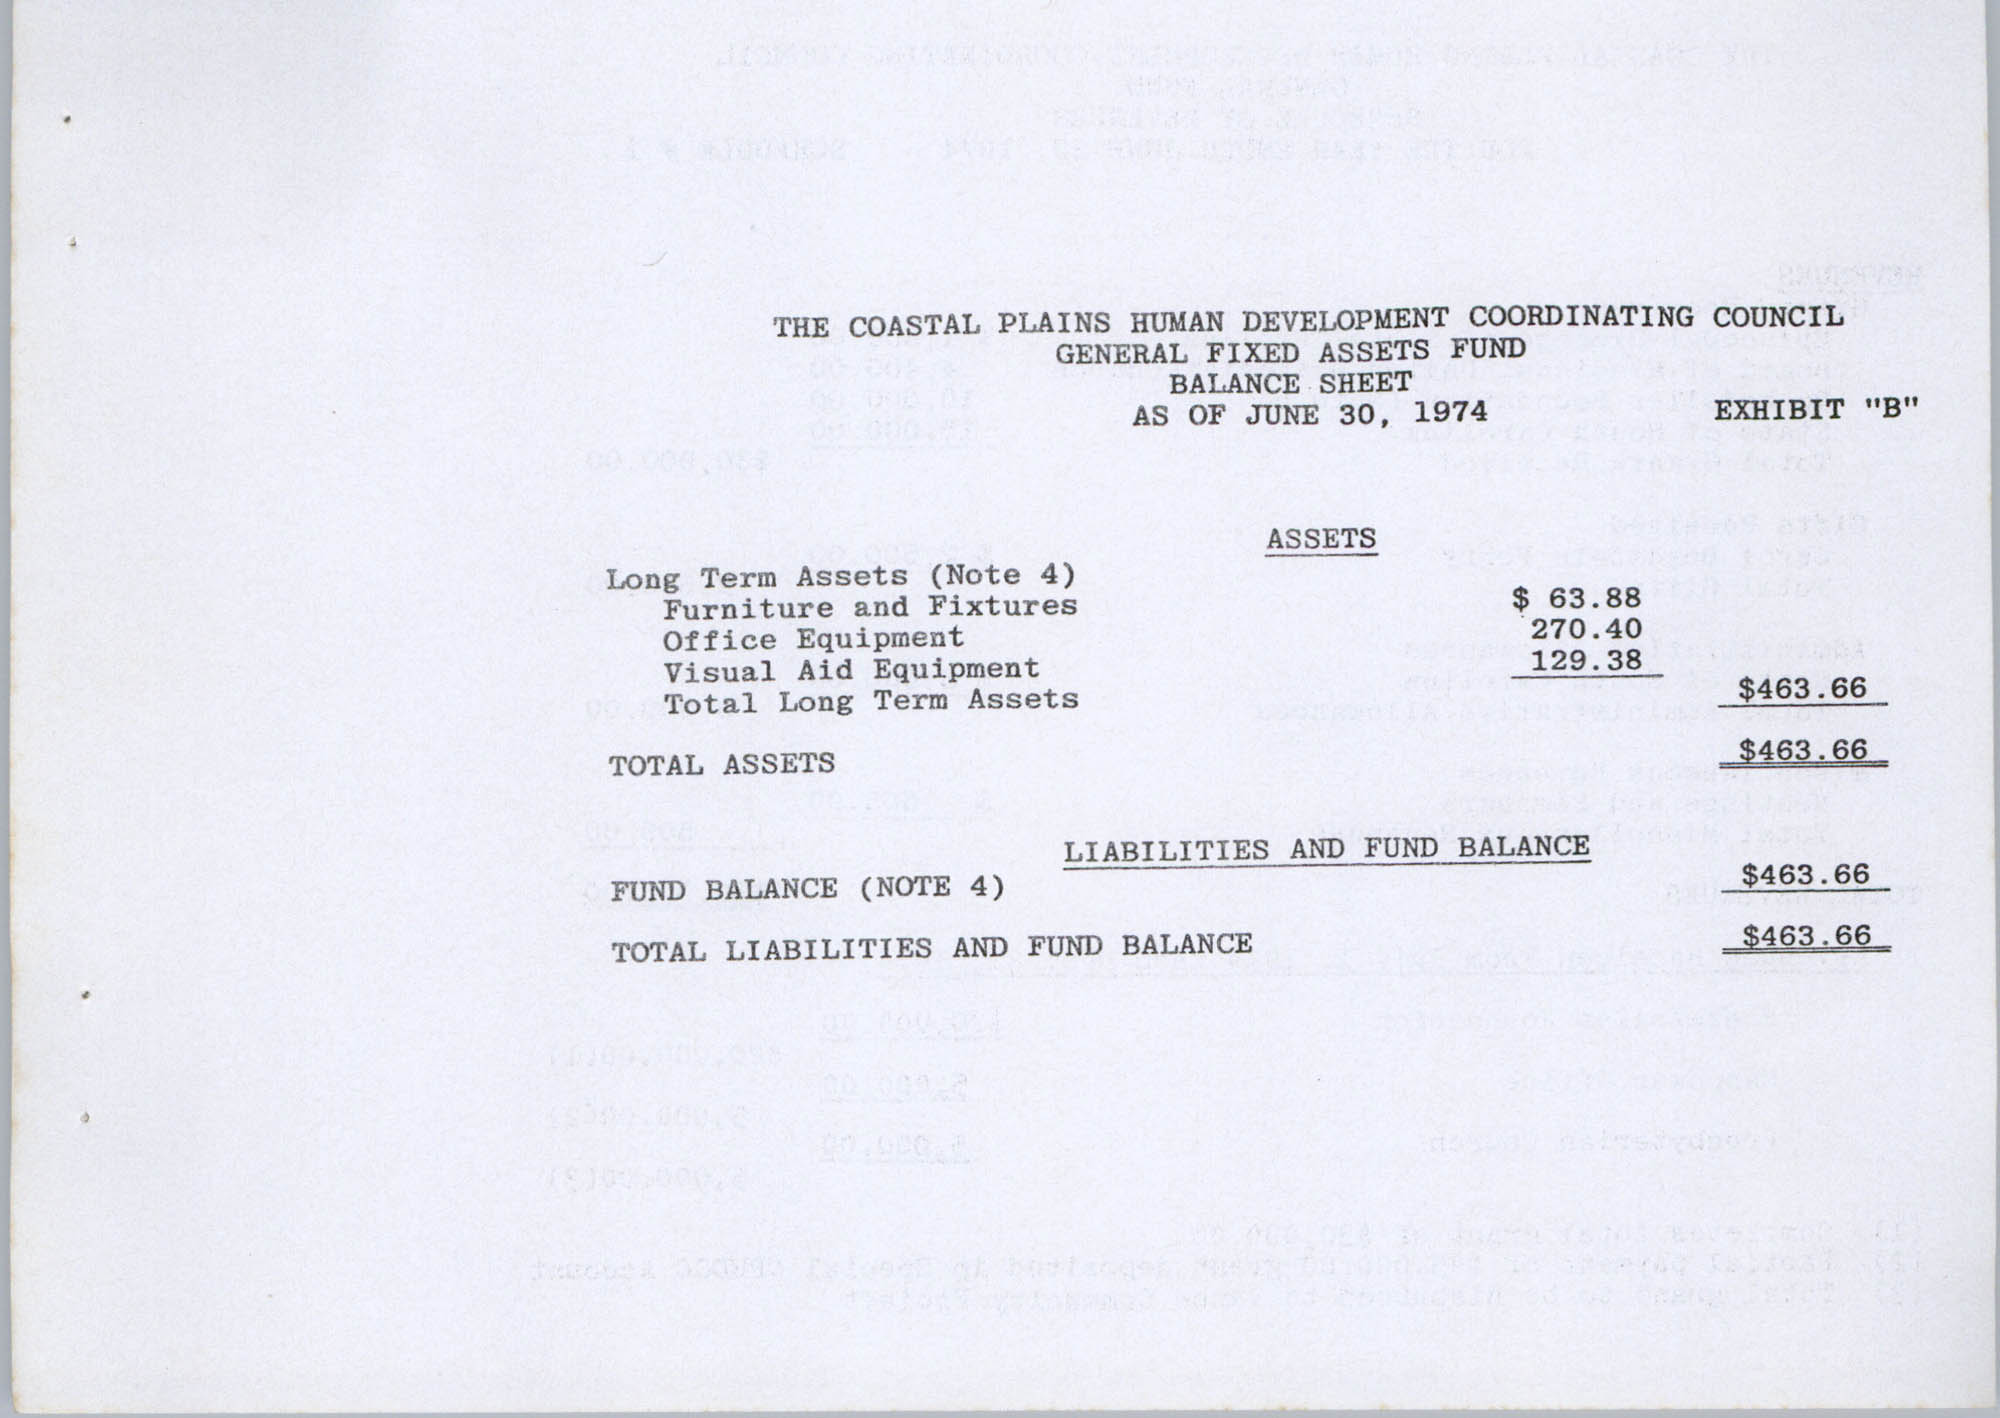 Coastal Plains Human Development Coordinating Council, 1974 Annual Report, Page 19